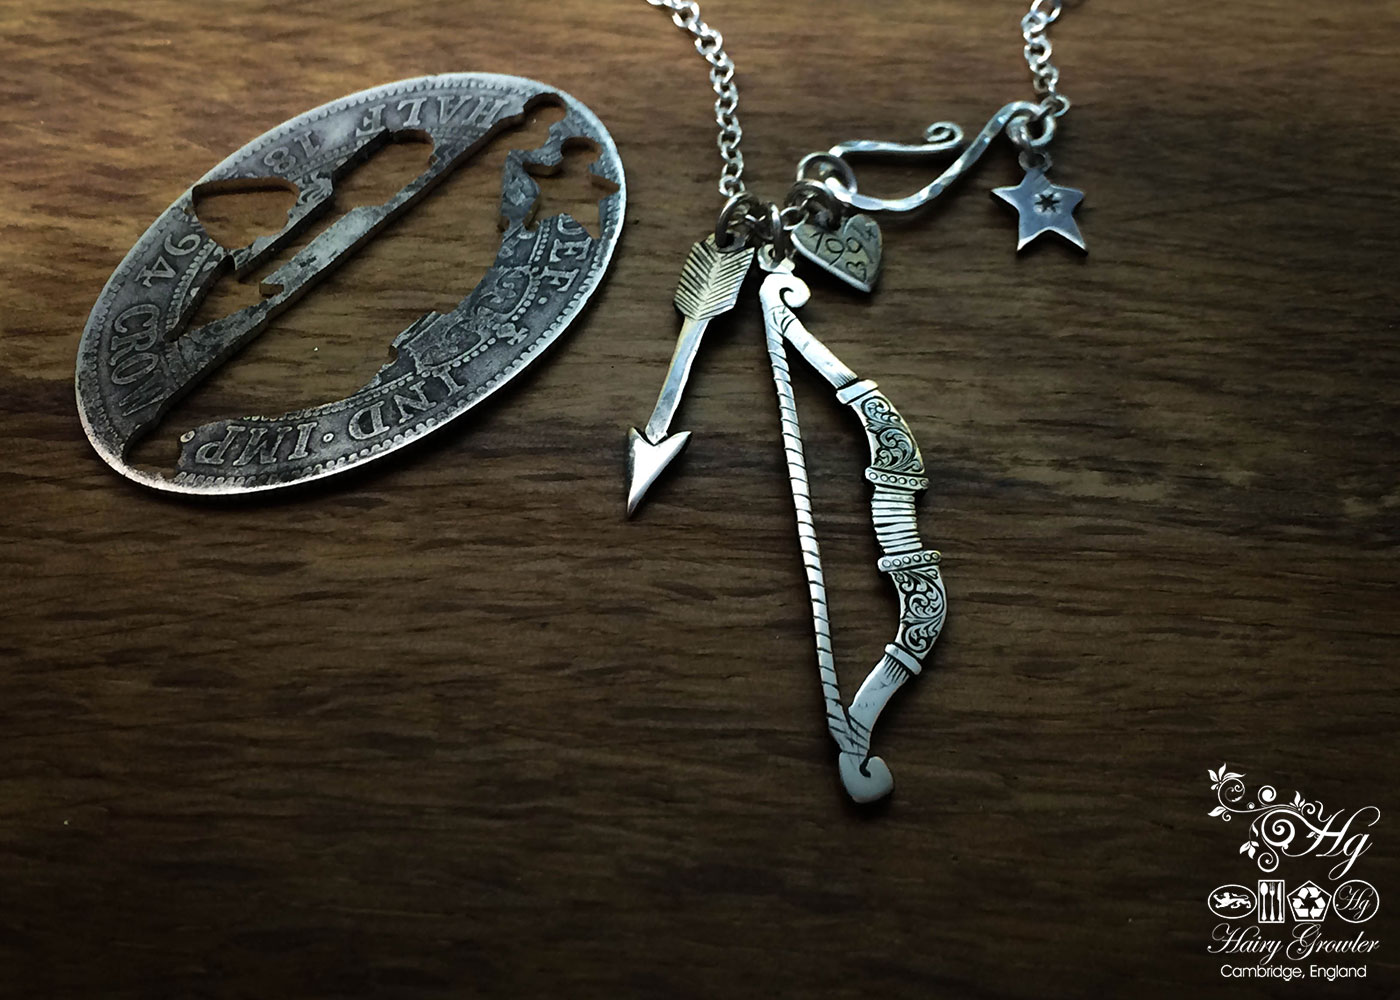 Handmade and upcycled sterling silver bow and arrow True Love necklaces